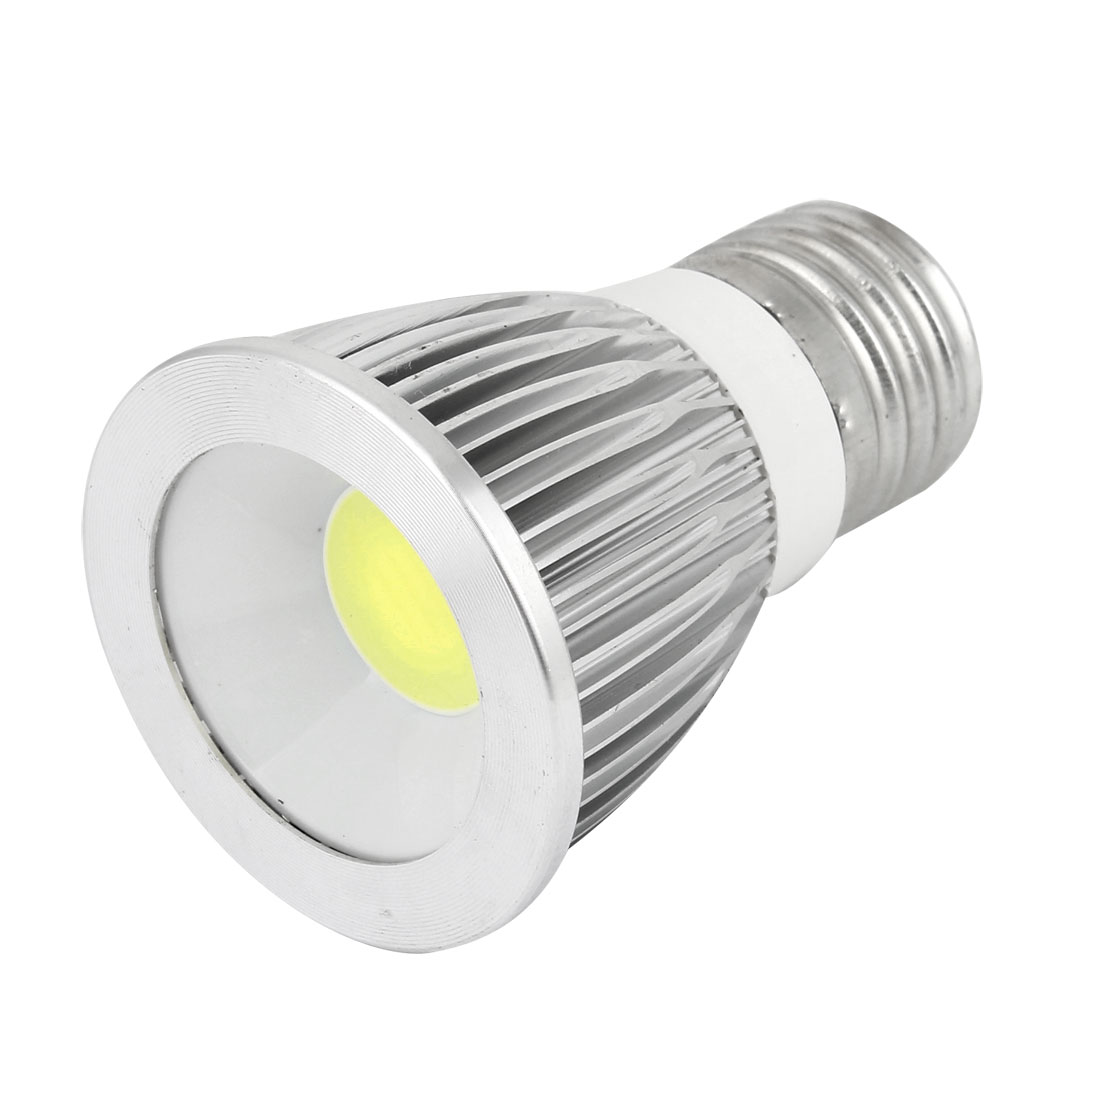 AC 85-265V 9W 600-650LM E27 Non-dimmable Cool White Light COB LED Downlight Lamp